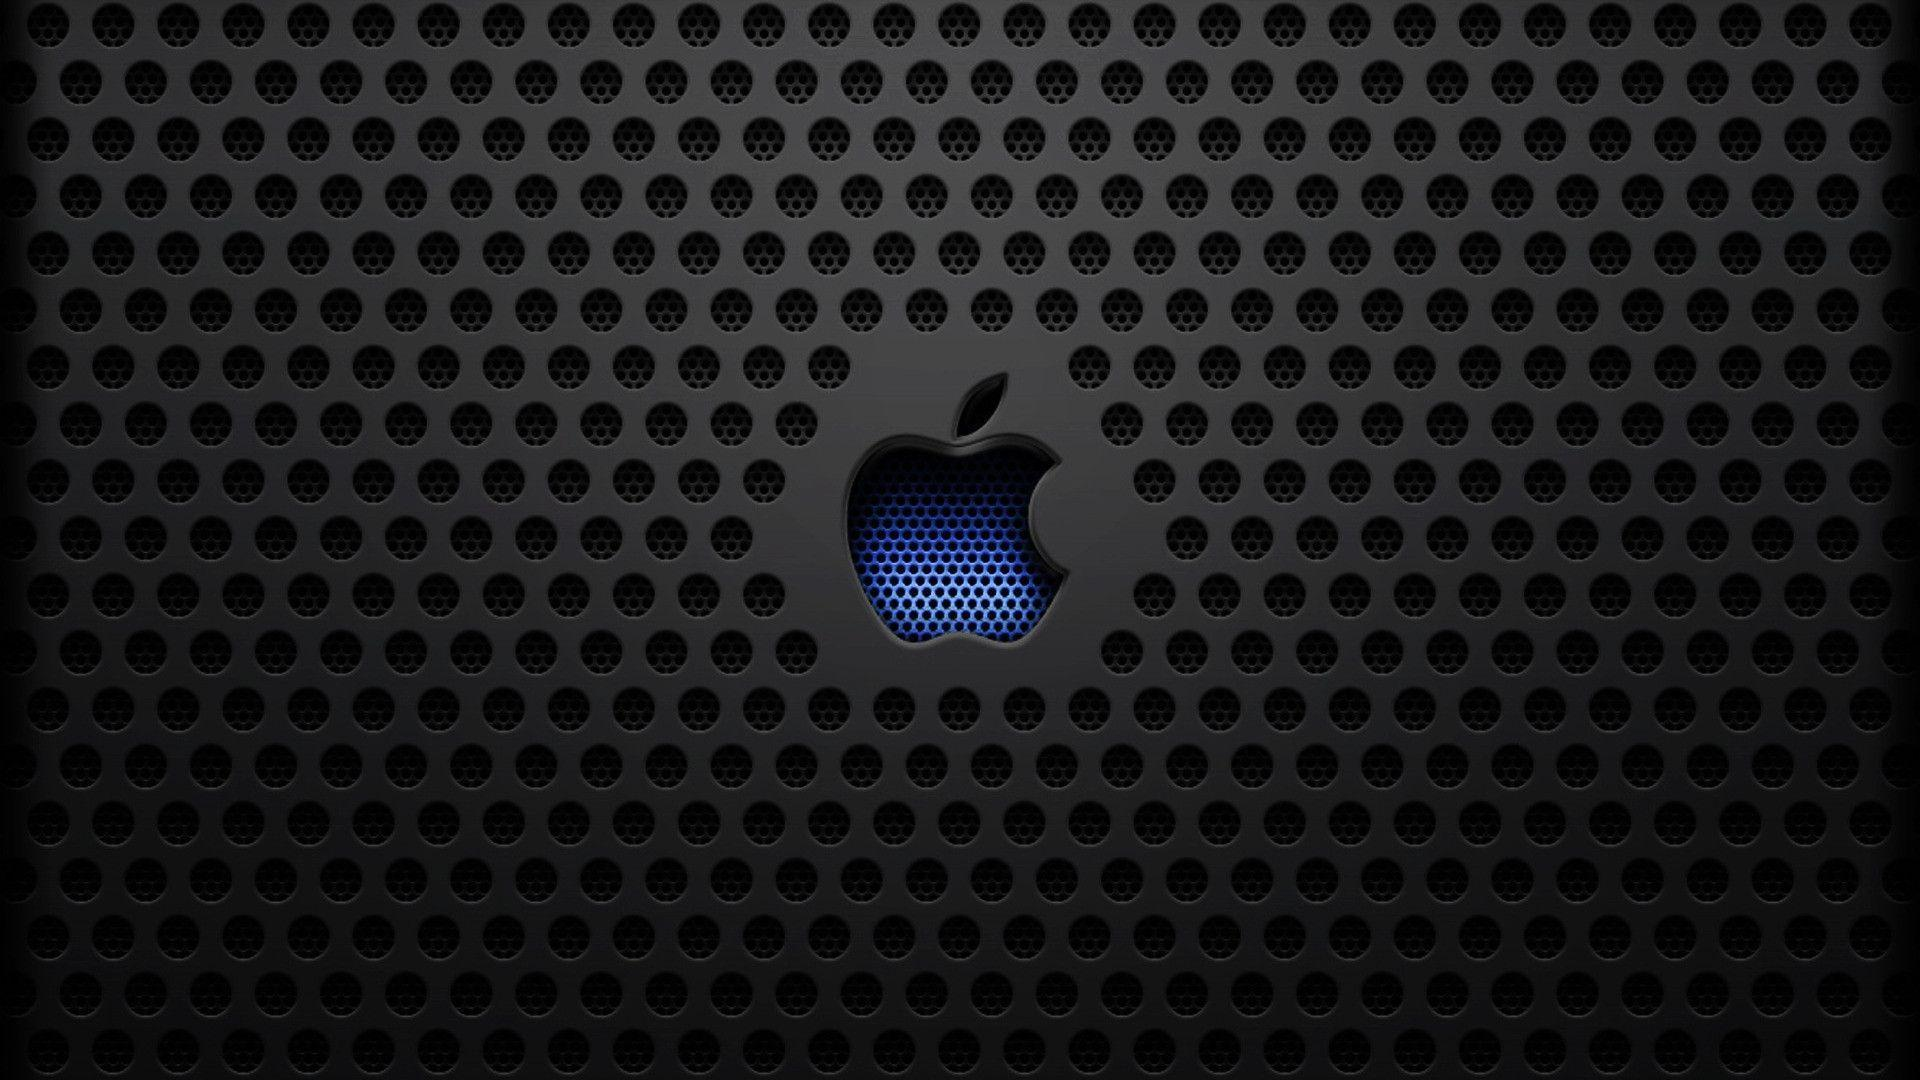 Marvelous Wallpaper Apple Black Pic Gt Gt Gt Best Wallpaper